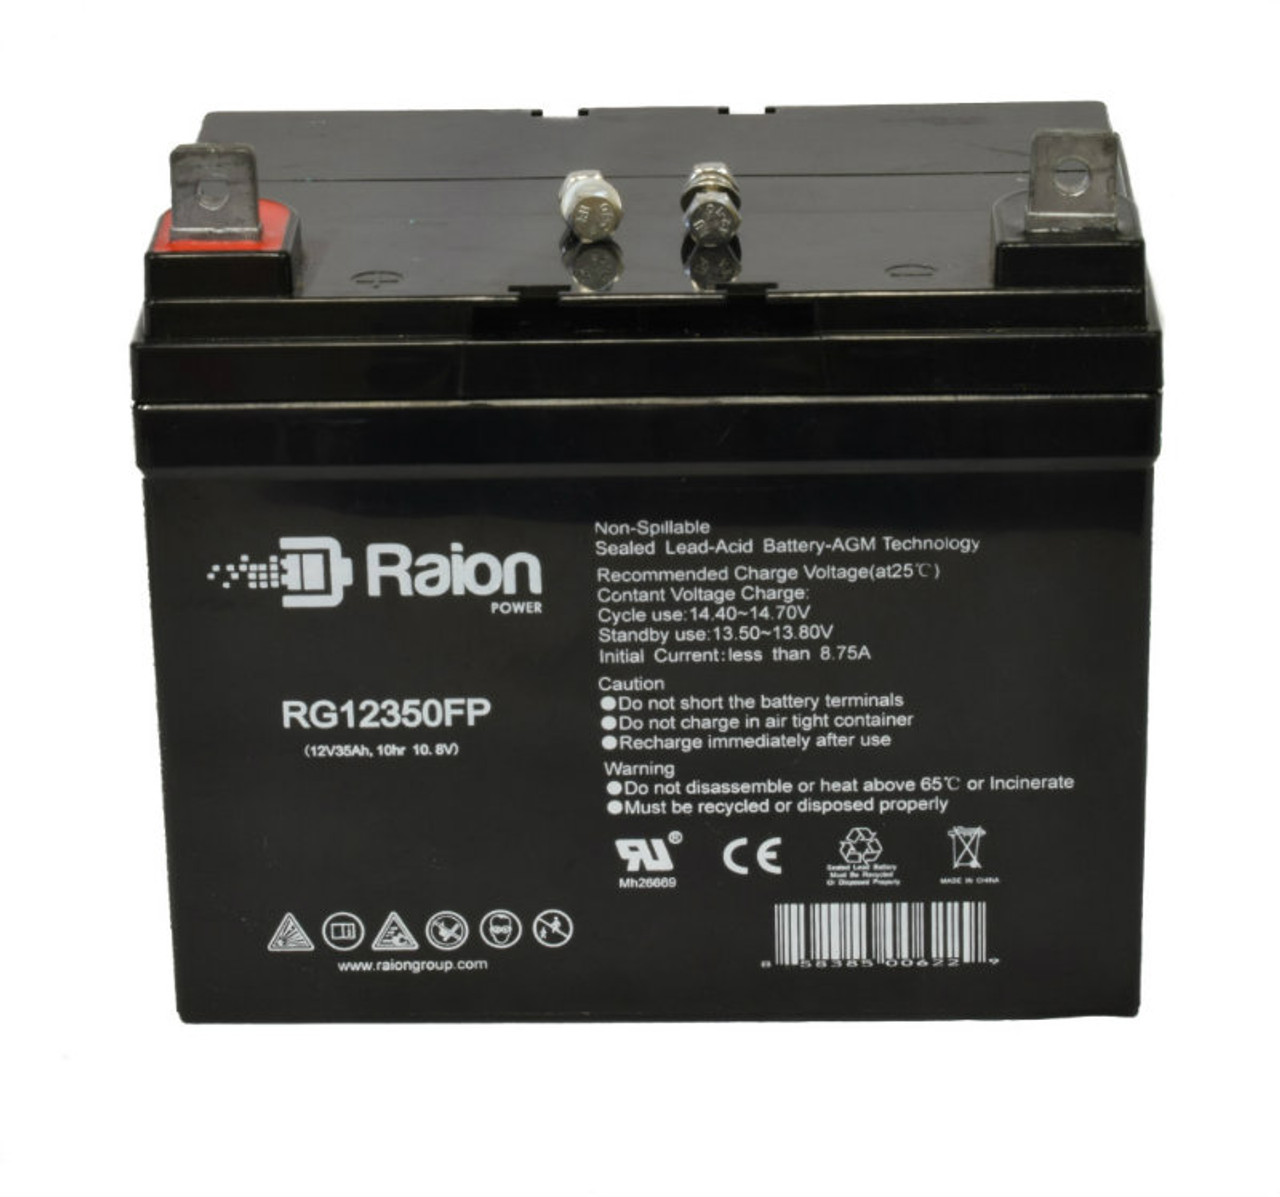 RG12350FP Sealed Lead Acid Battery Pack For Burke Mobility Plus III Mobility Scooter